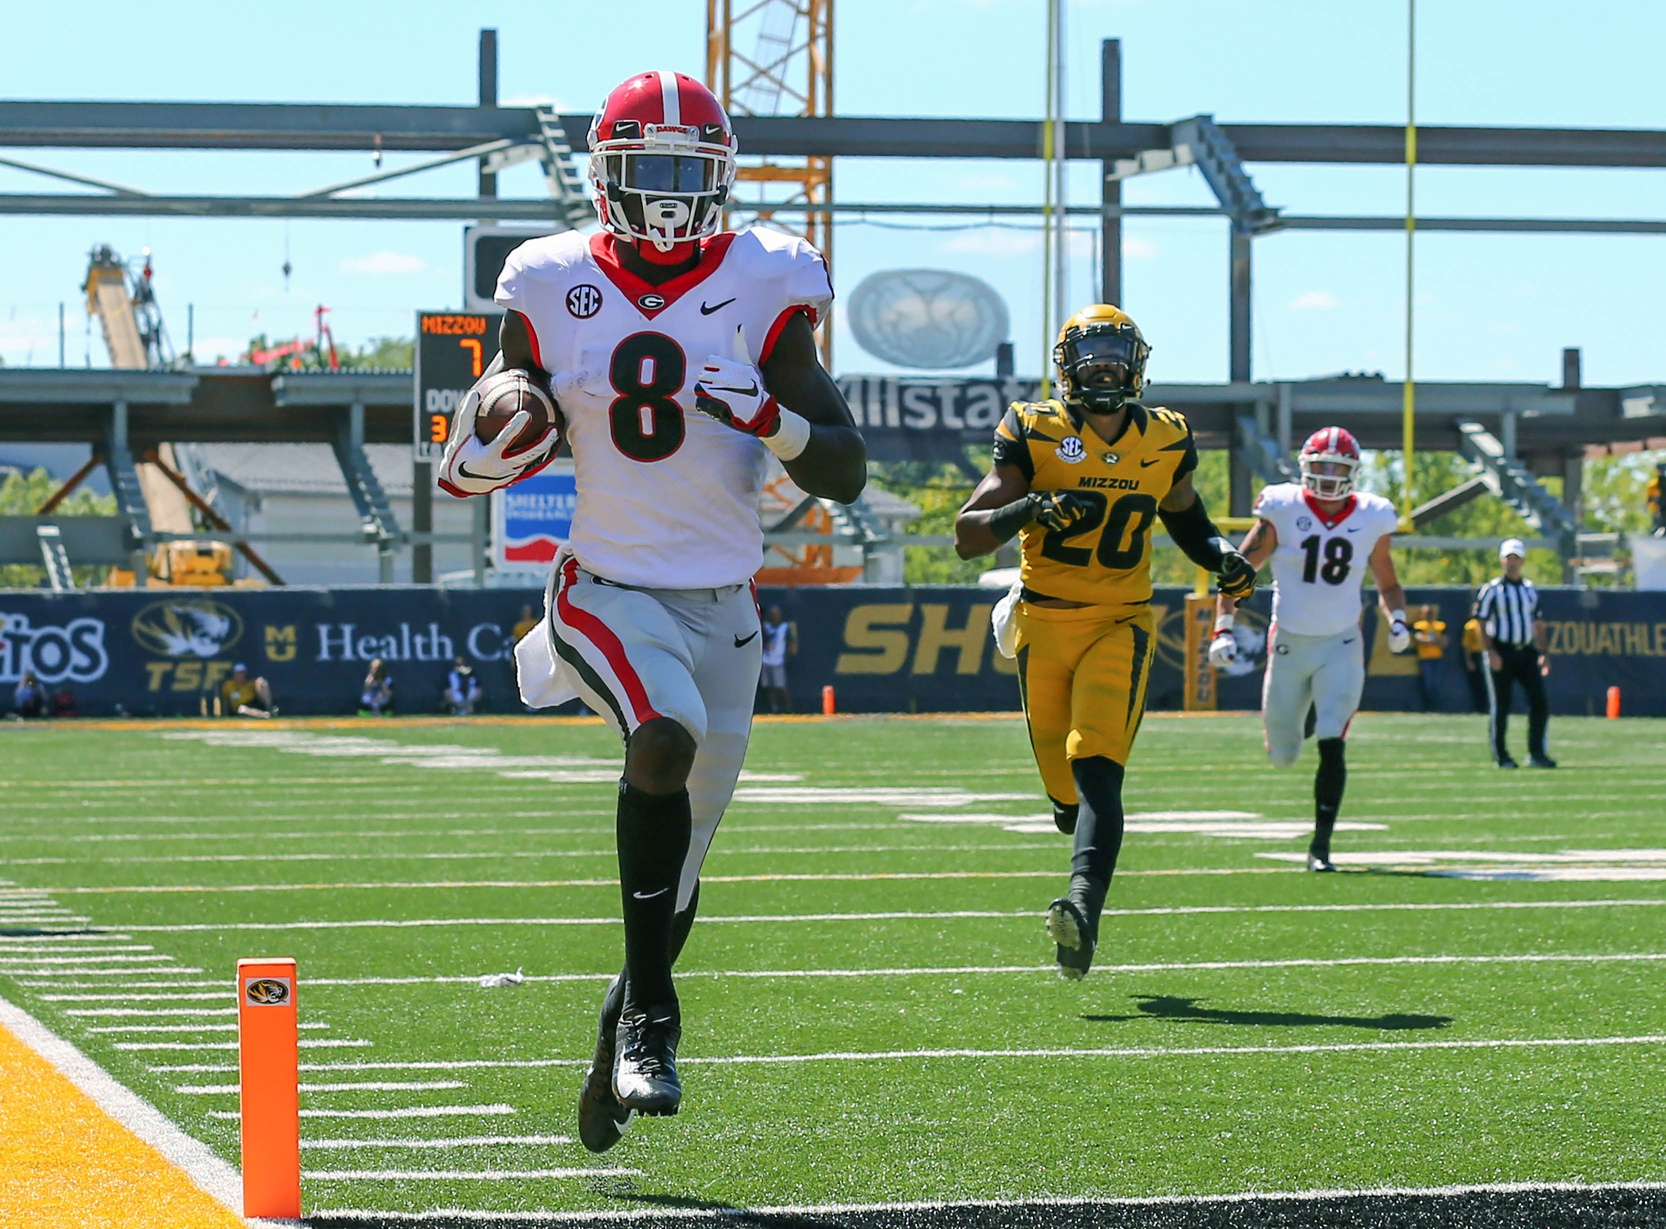 Georgia standout WR Riley Ridley points to physicality, sure-handedness as key strengths